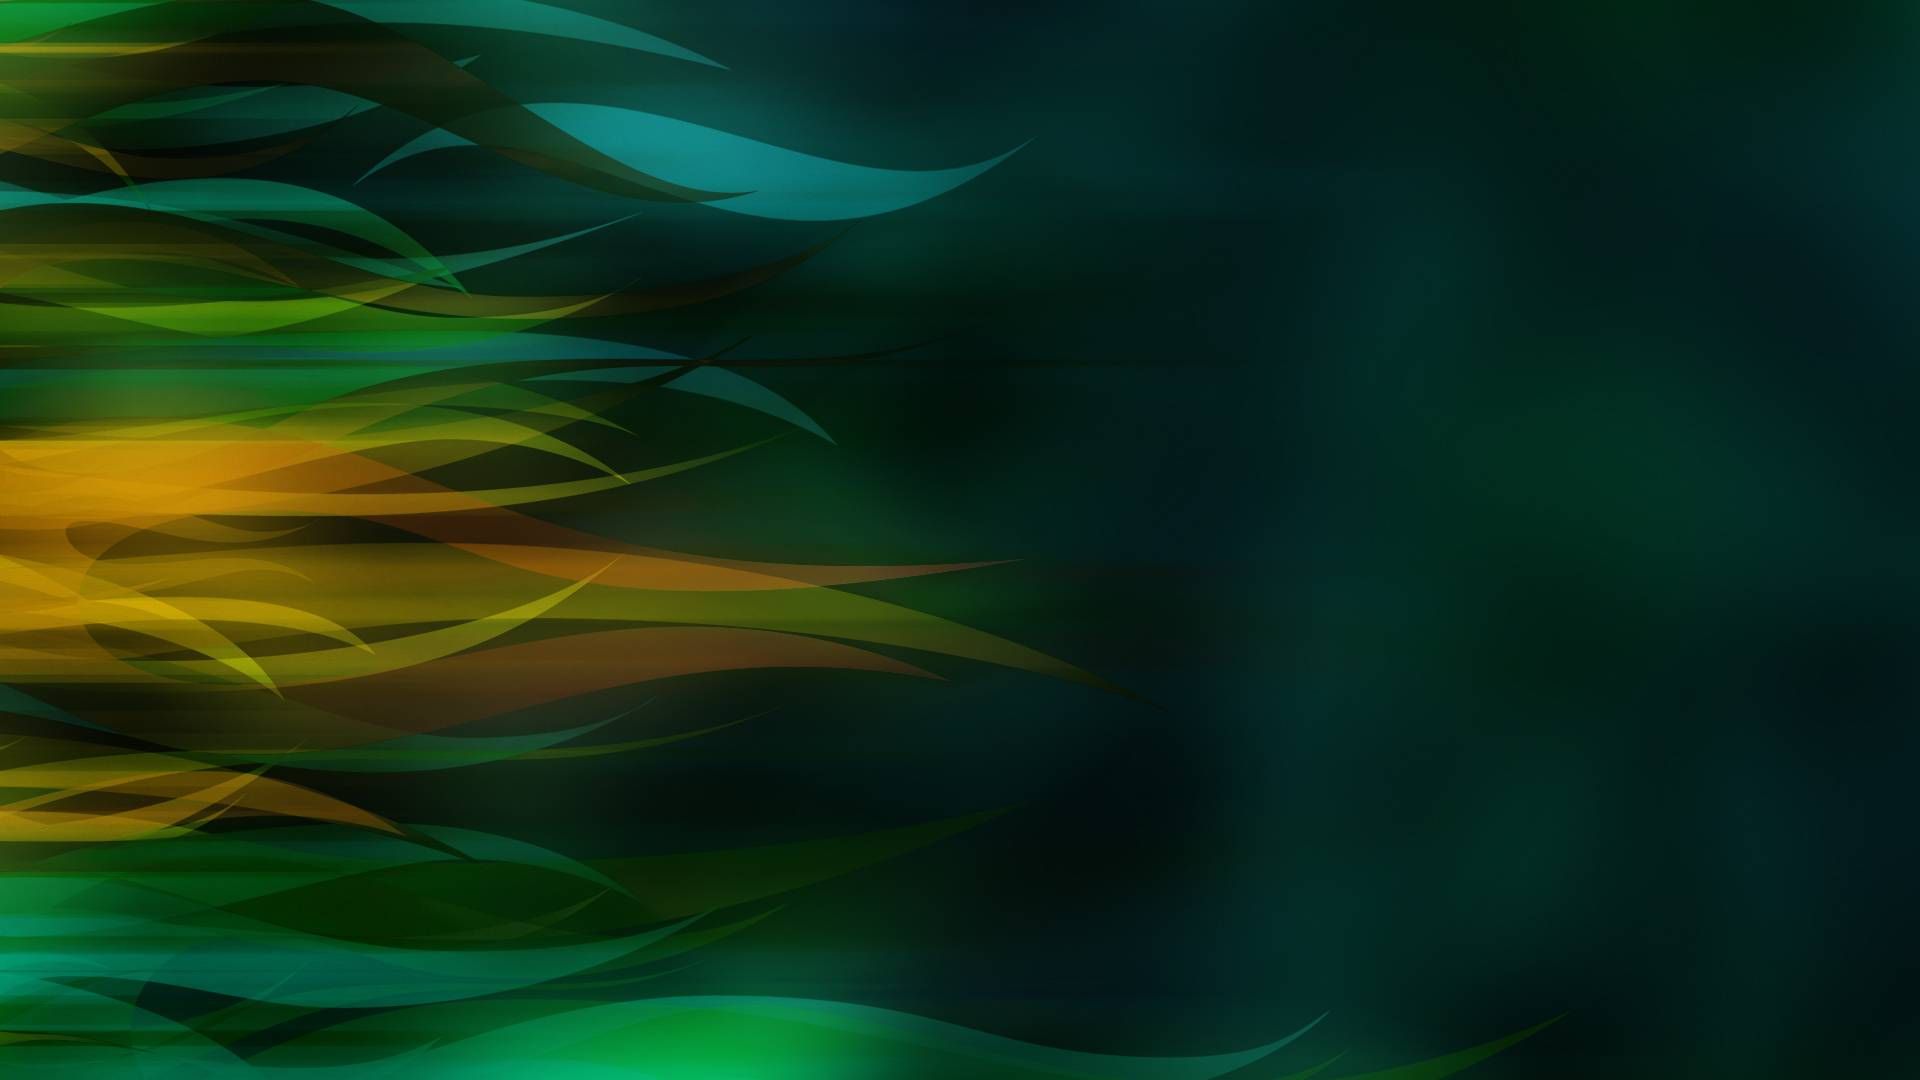 Free backgrounds wallpapers wallpaper cave for Wallpapers gratis